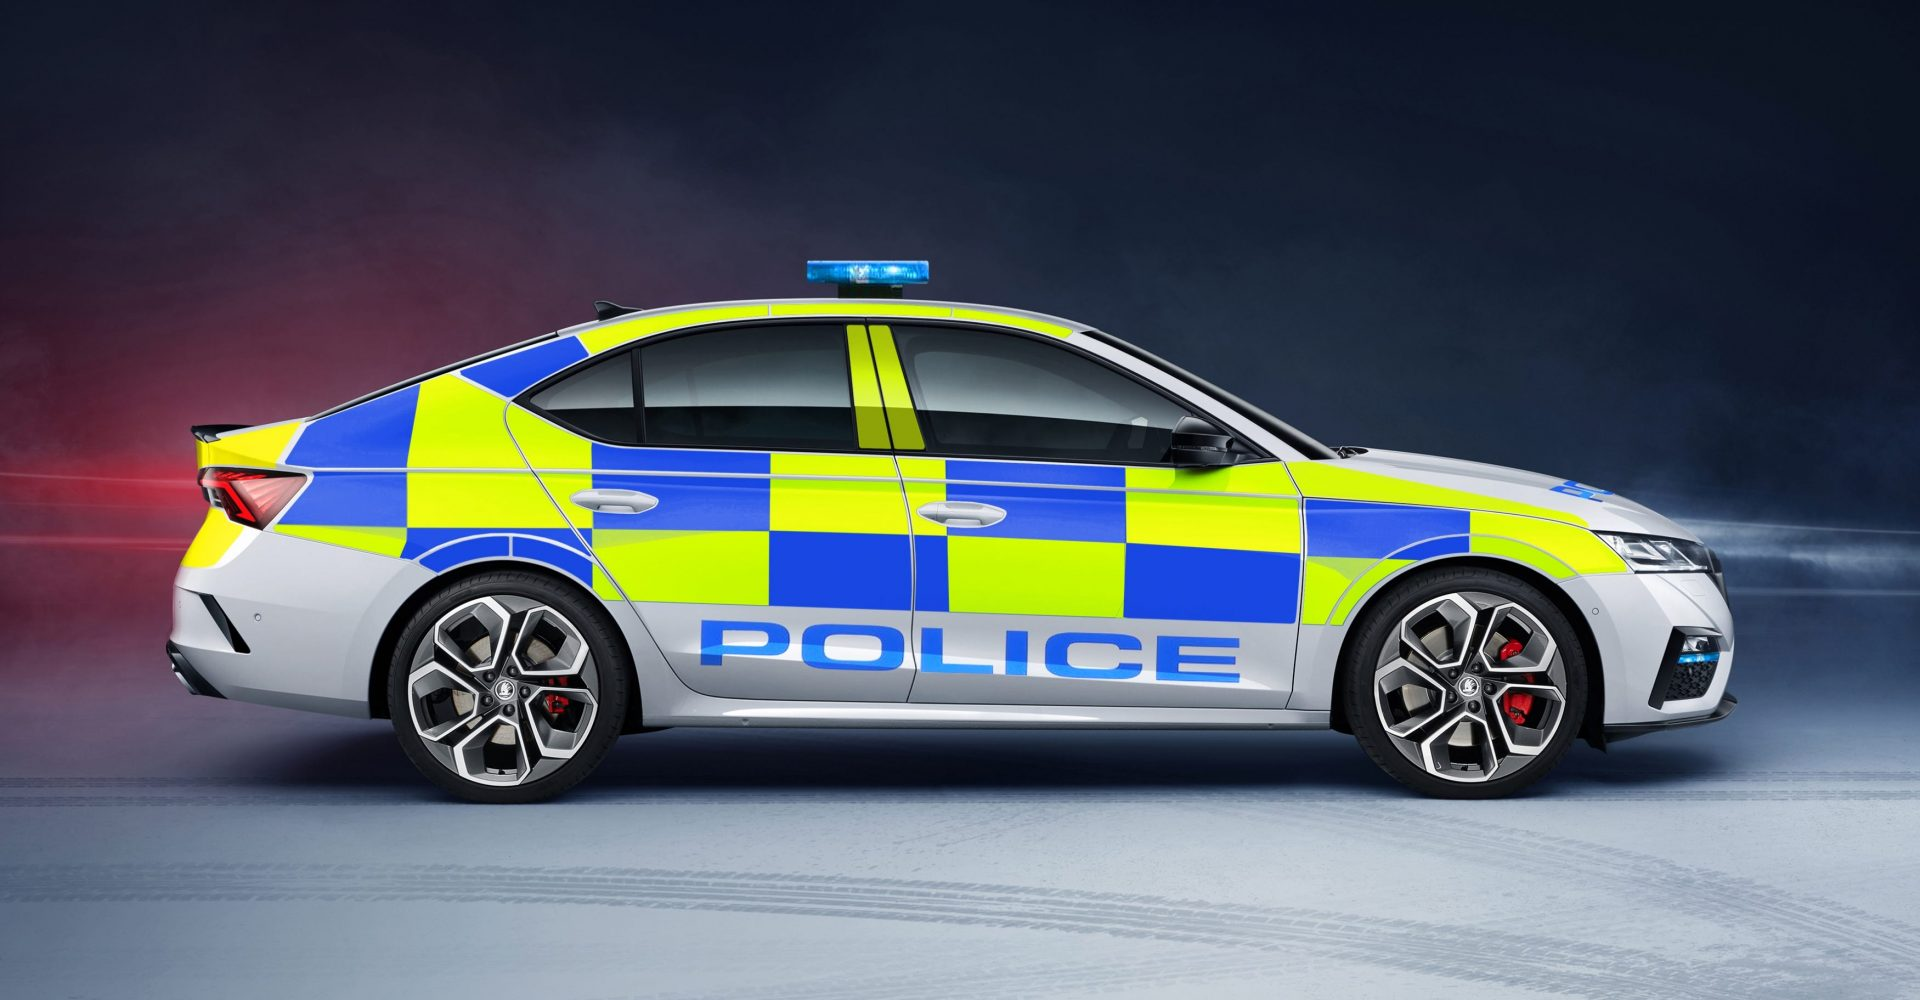 New Skoda Octavia vRS now available for UK police use